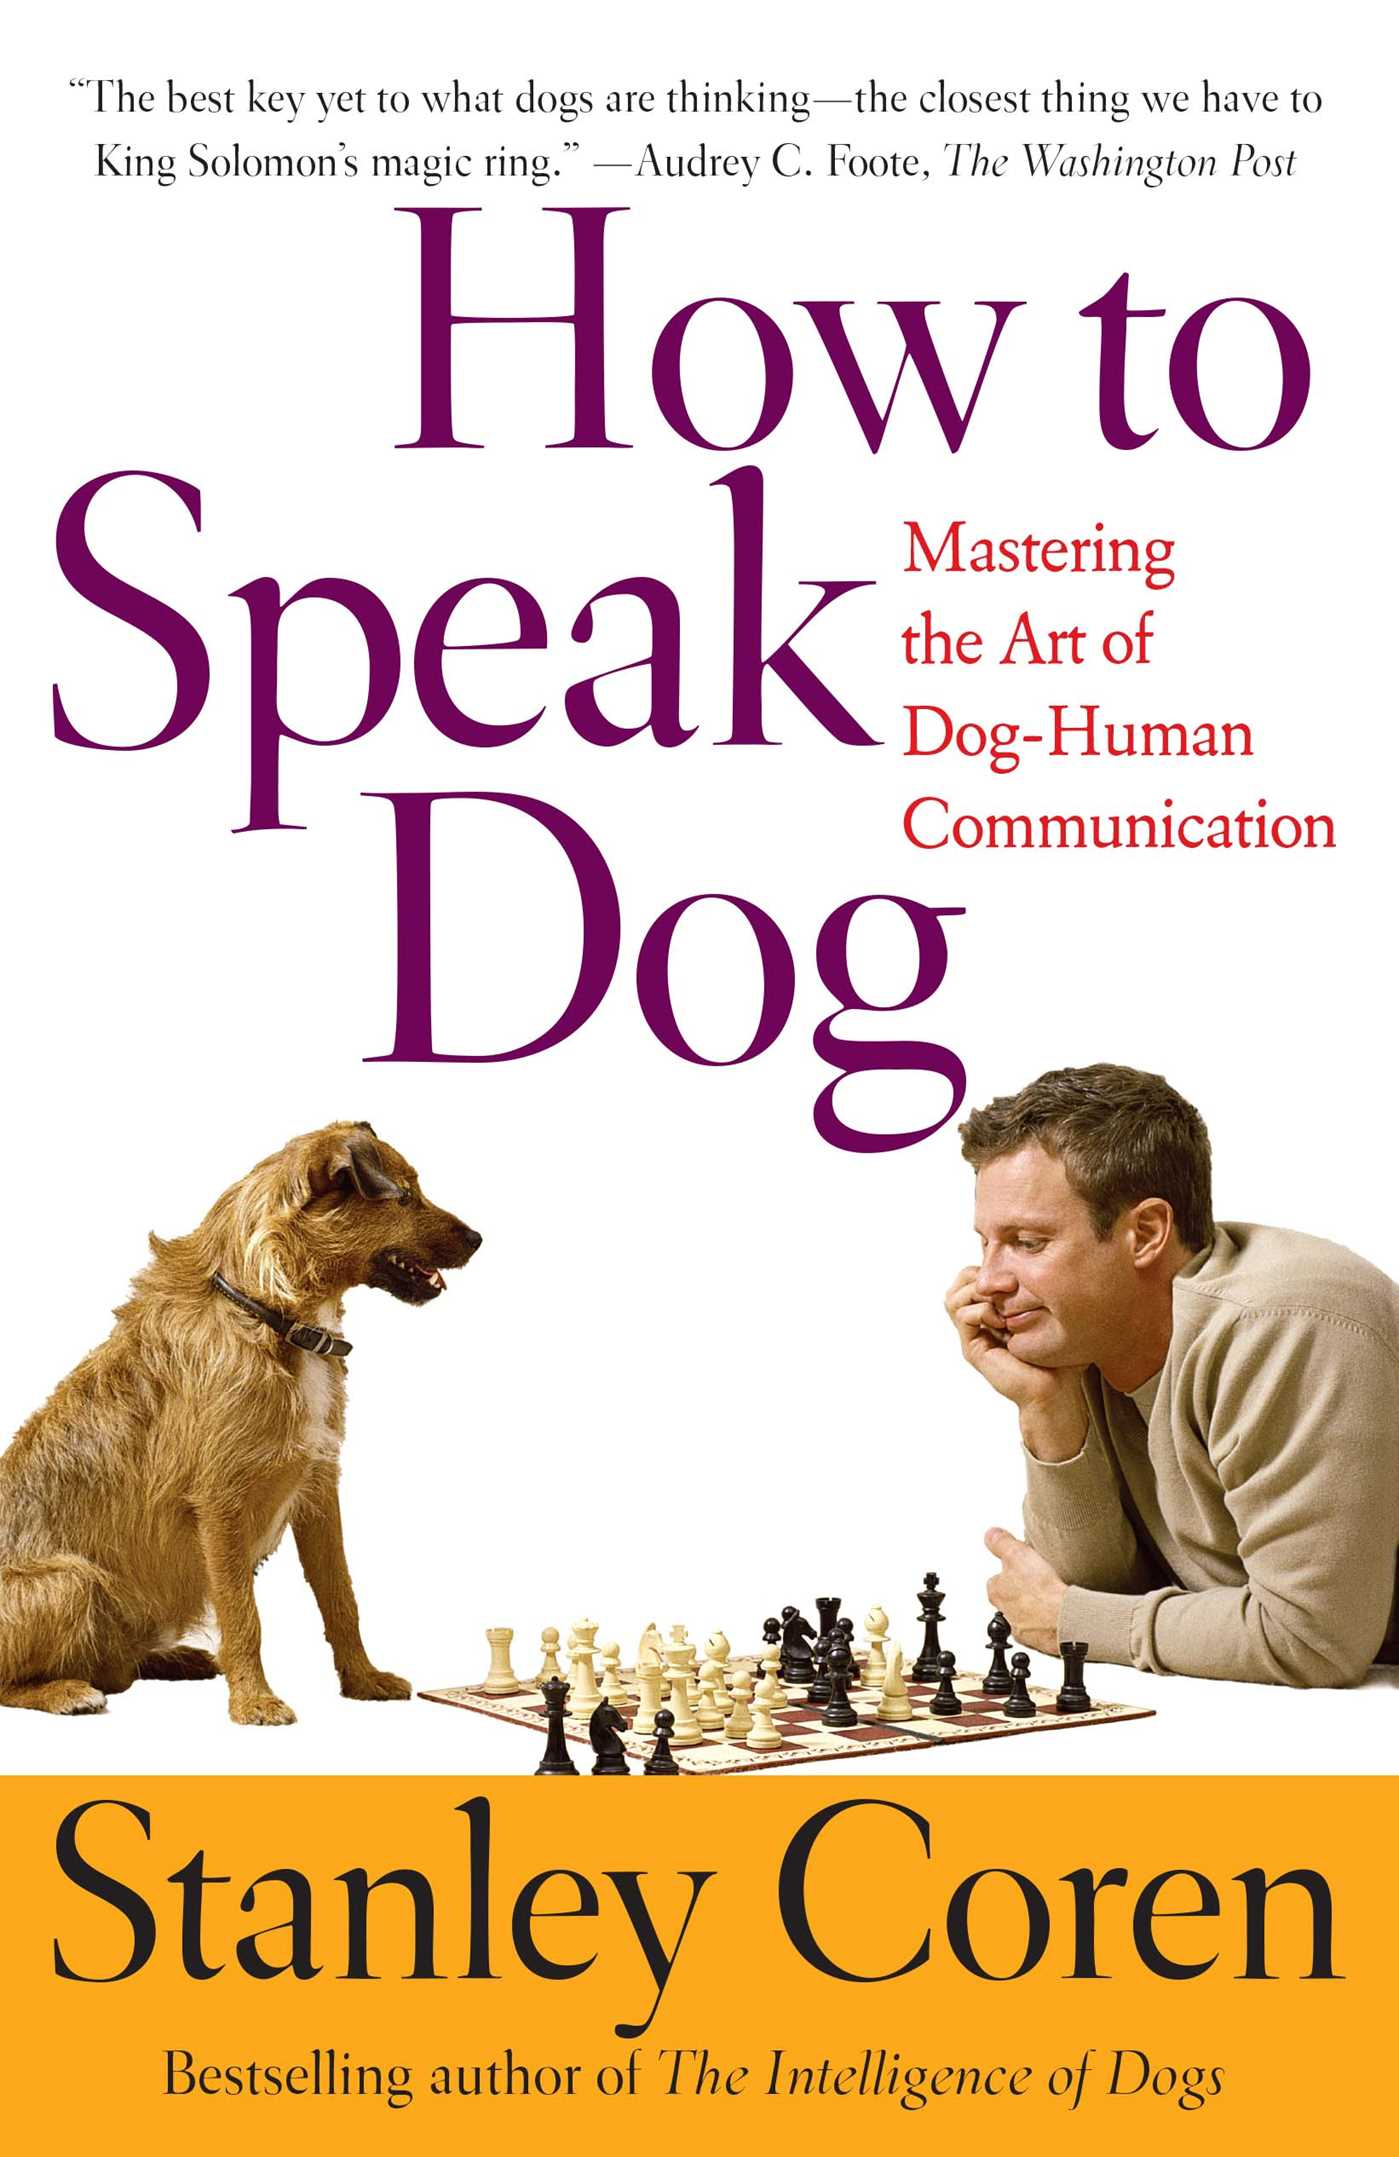 How-to-speak-dog-9780743202978_hr